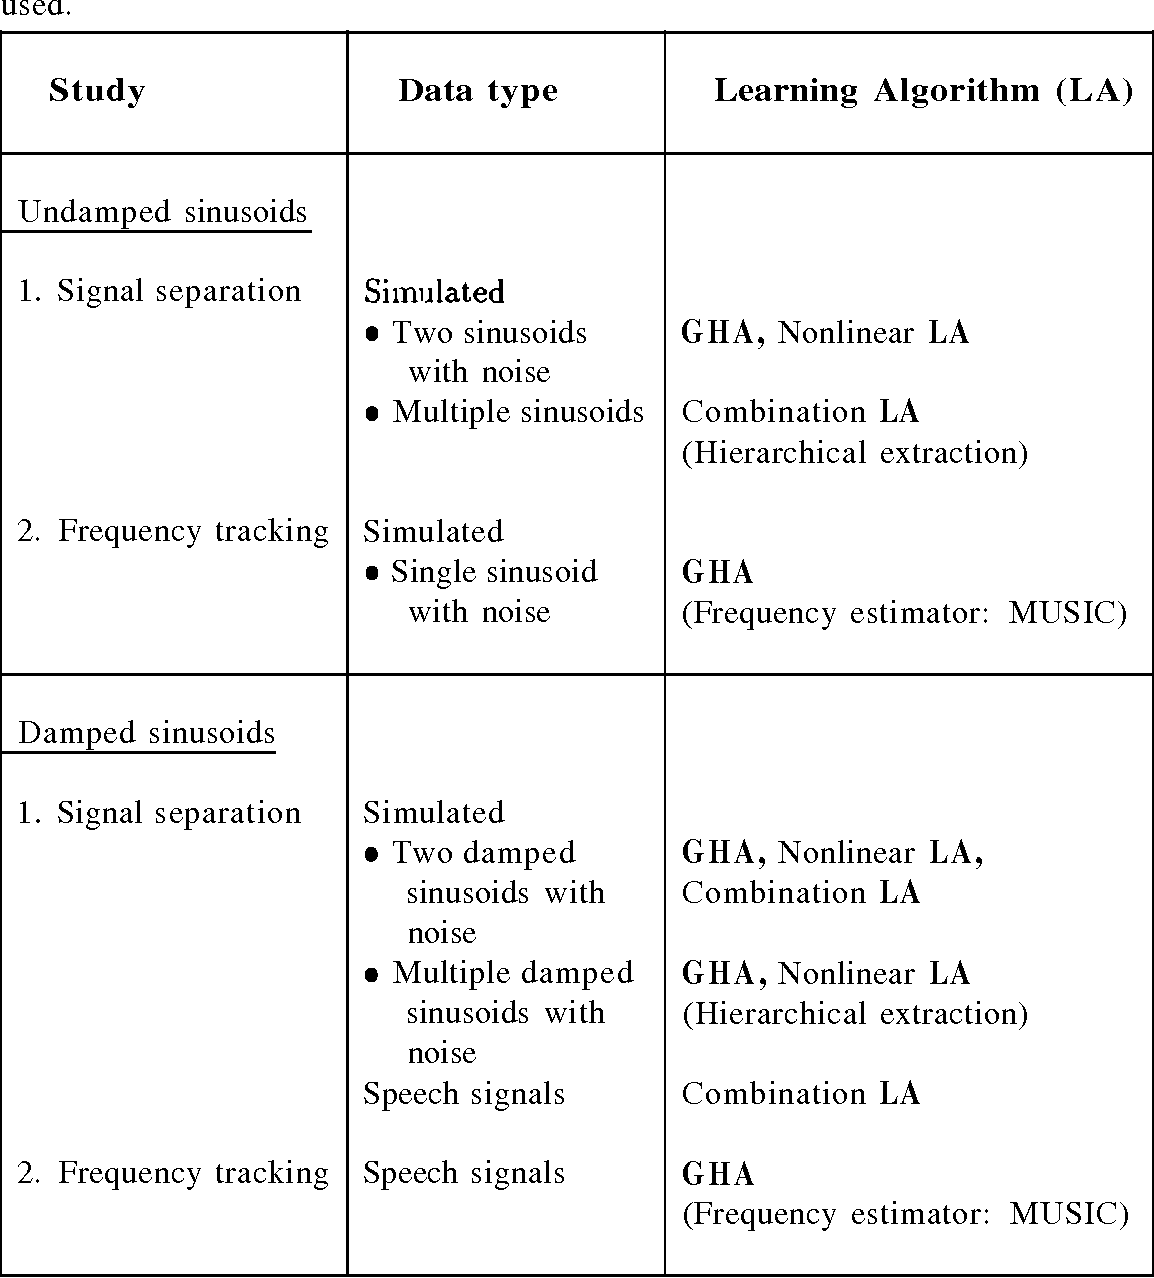 Table 3.1: List of different studies with the type of data and the learning algorithm used.